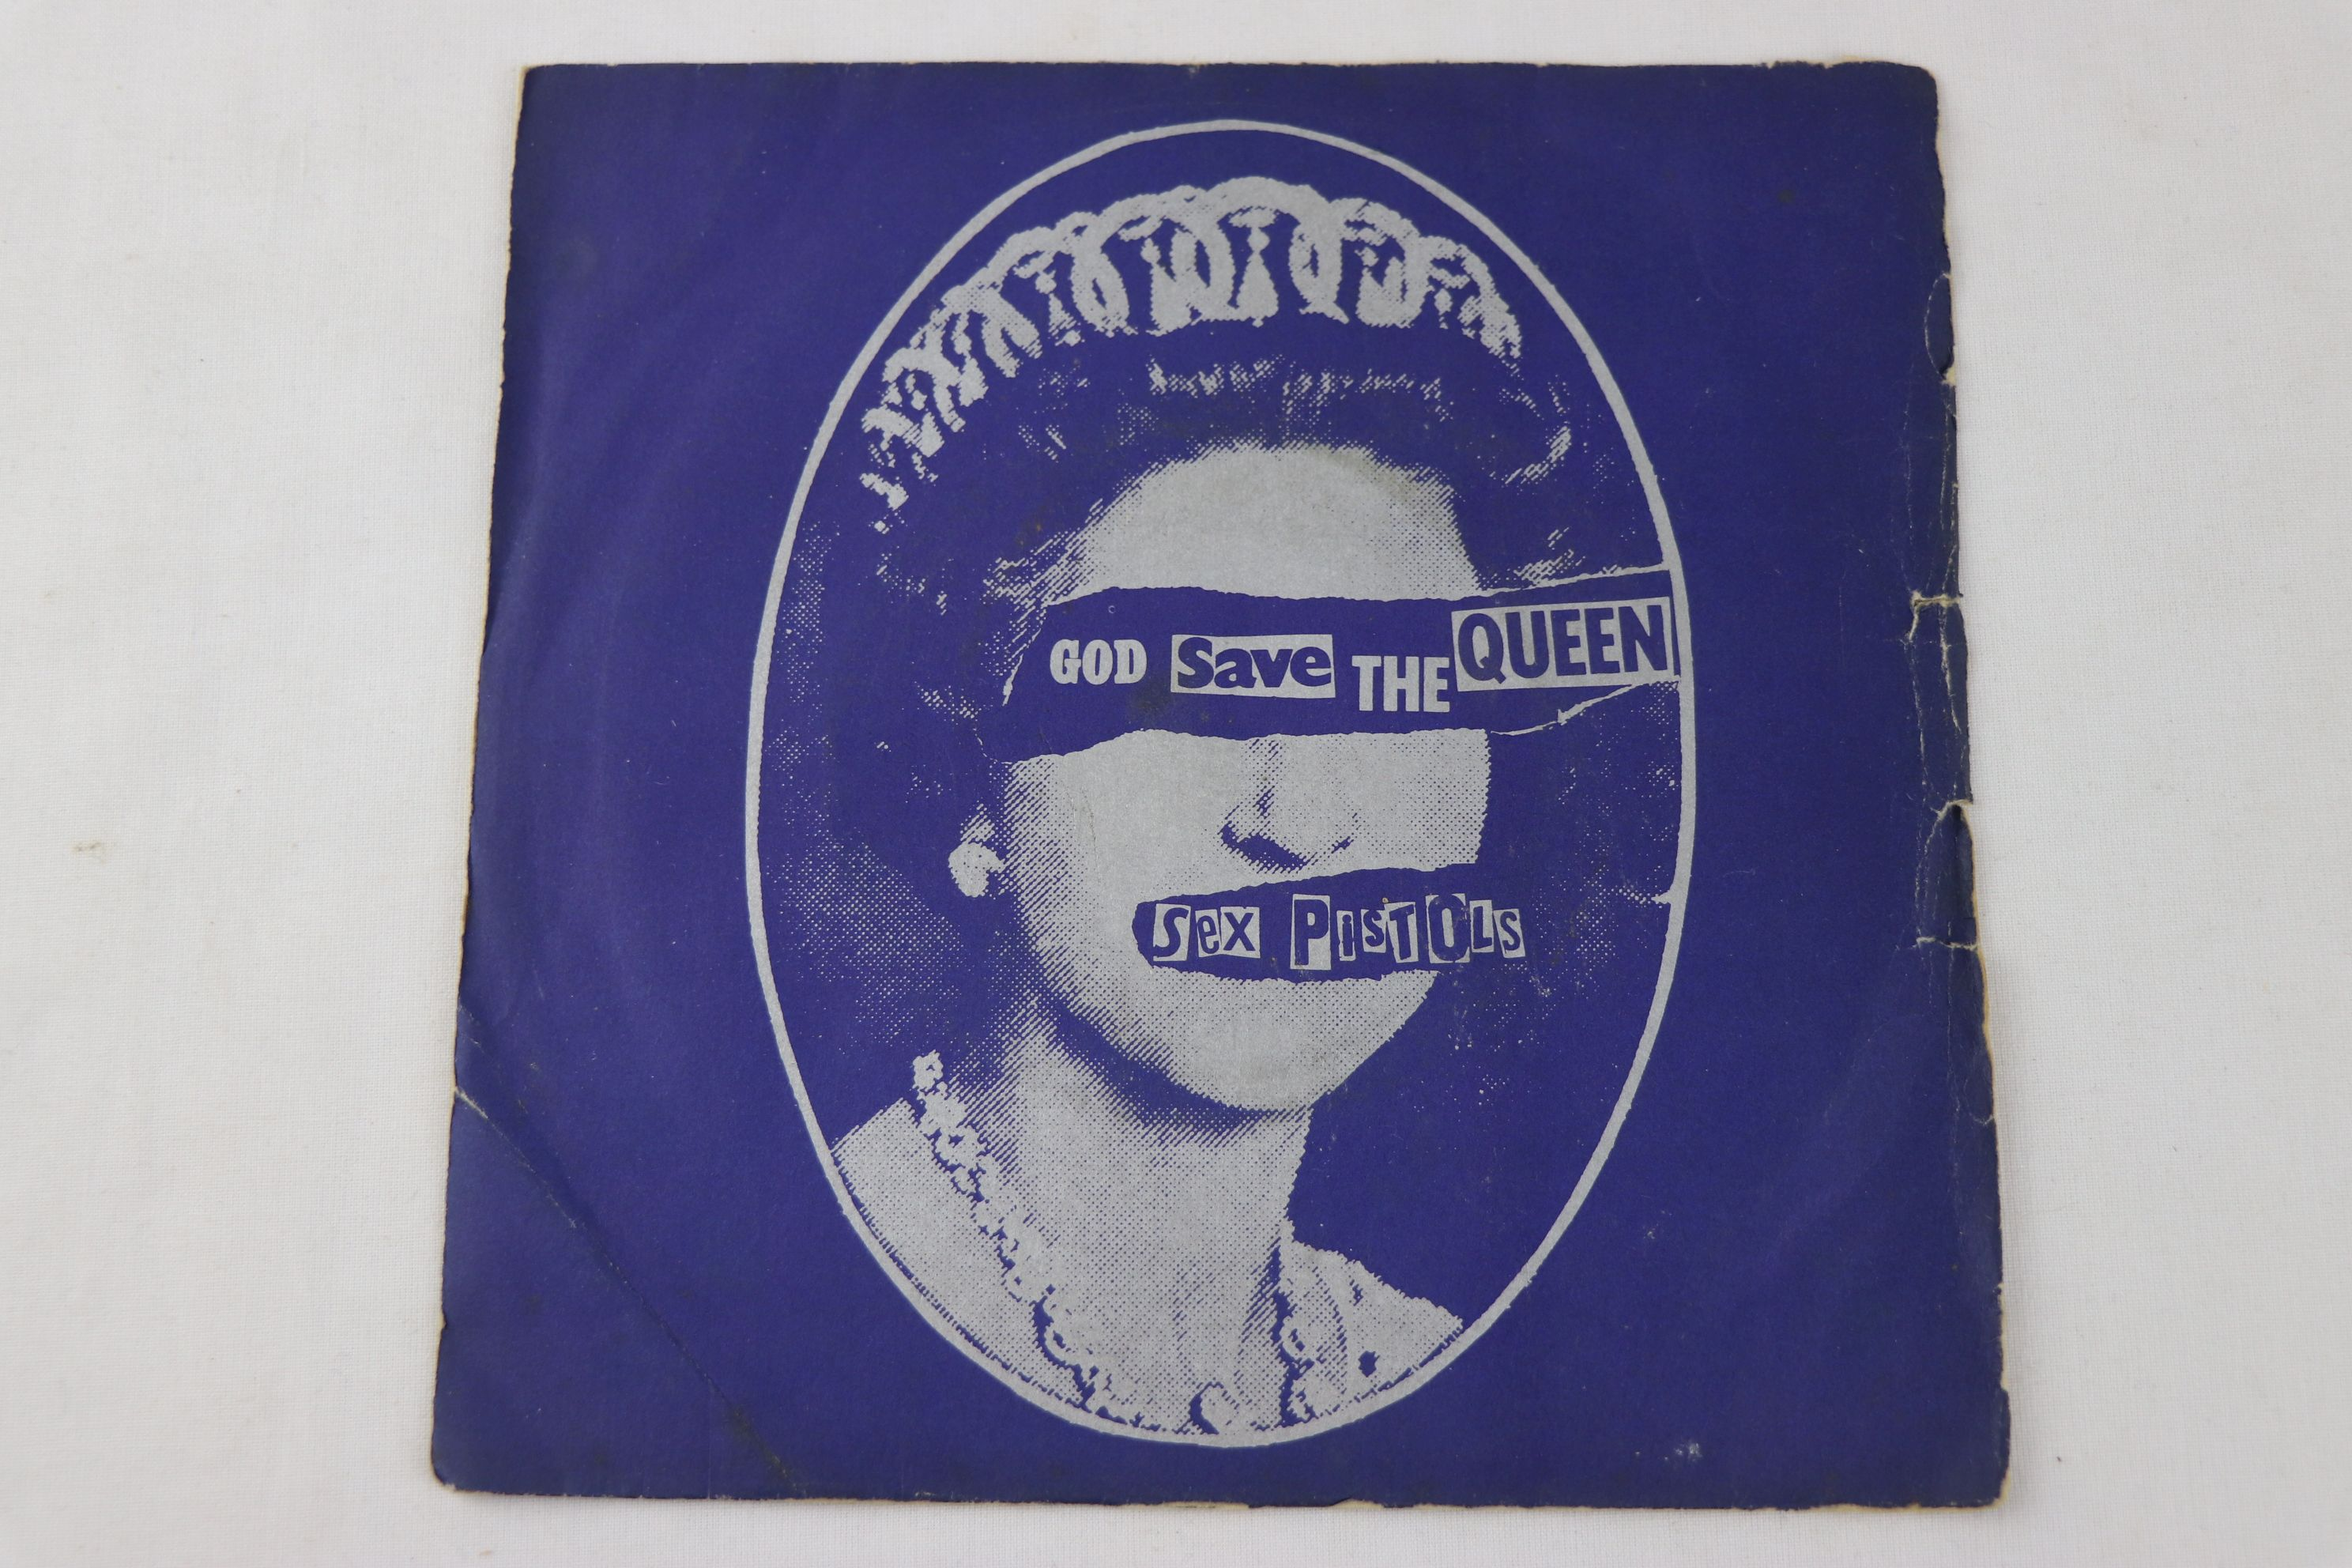 PUNK - SEX PISTOLS - PACK OF 7 ORIGINAL PRESSING SINGLES. 1. GOD SAVE THE QUEEN, 1977 VIRGIN RECORDS - Image 8 of 8